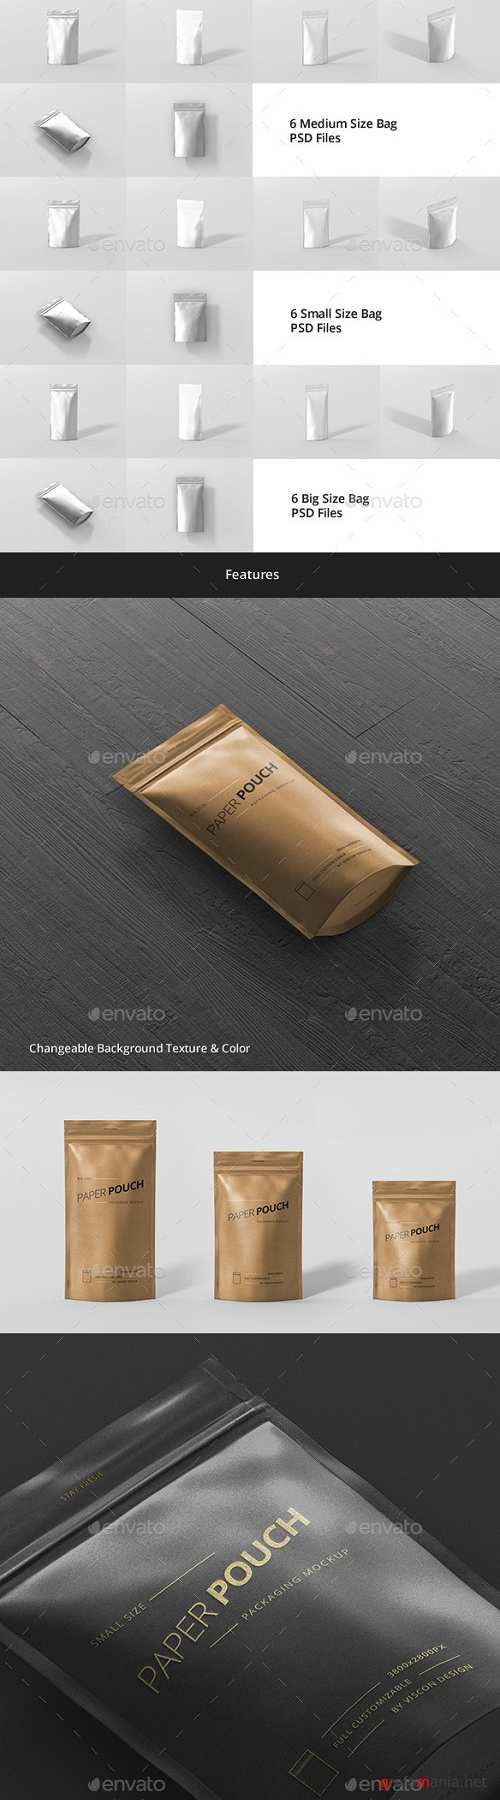 Paper Pouch Bag Mockup Bundle - 19442806